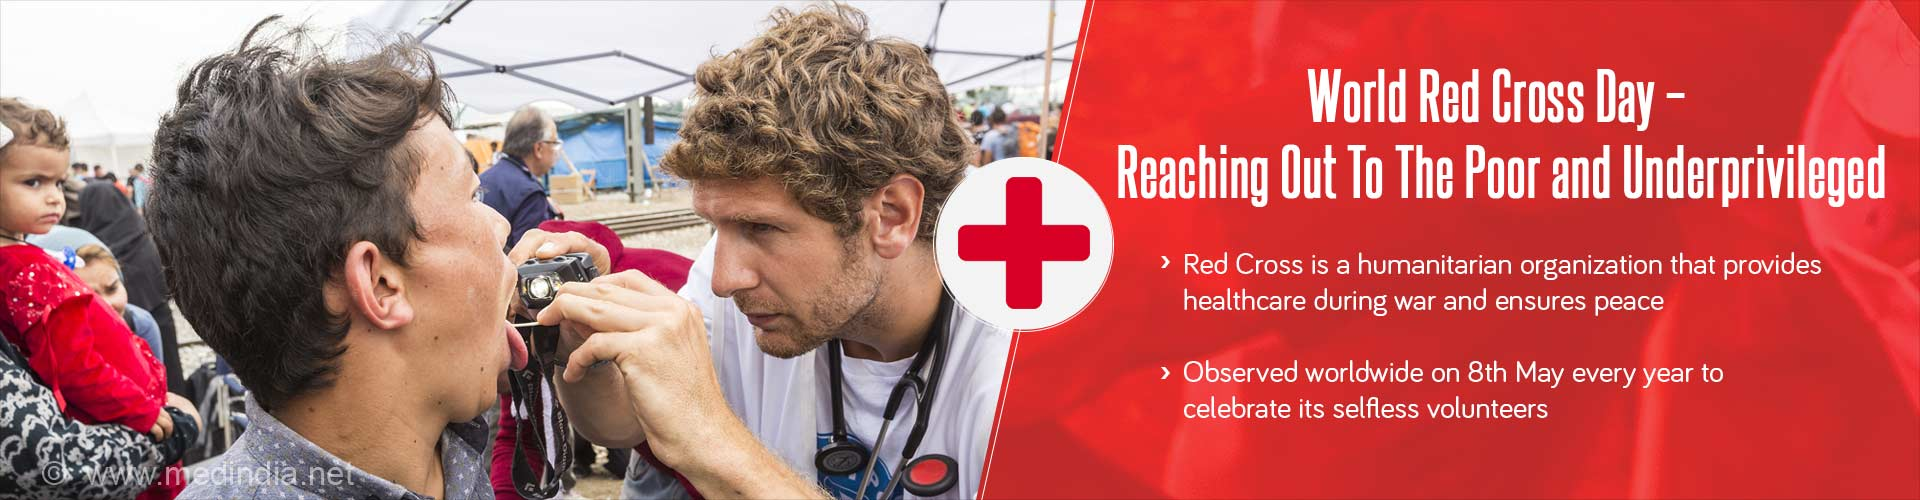 world red cross day - reaching out to the poor and underprivileged - red cross is a humanitarian organization that provides healthcare during war and ensures peace - observed worldwide on 8th may every year to celebrate its selfless volunteers